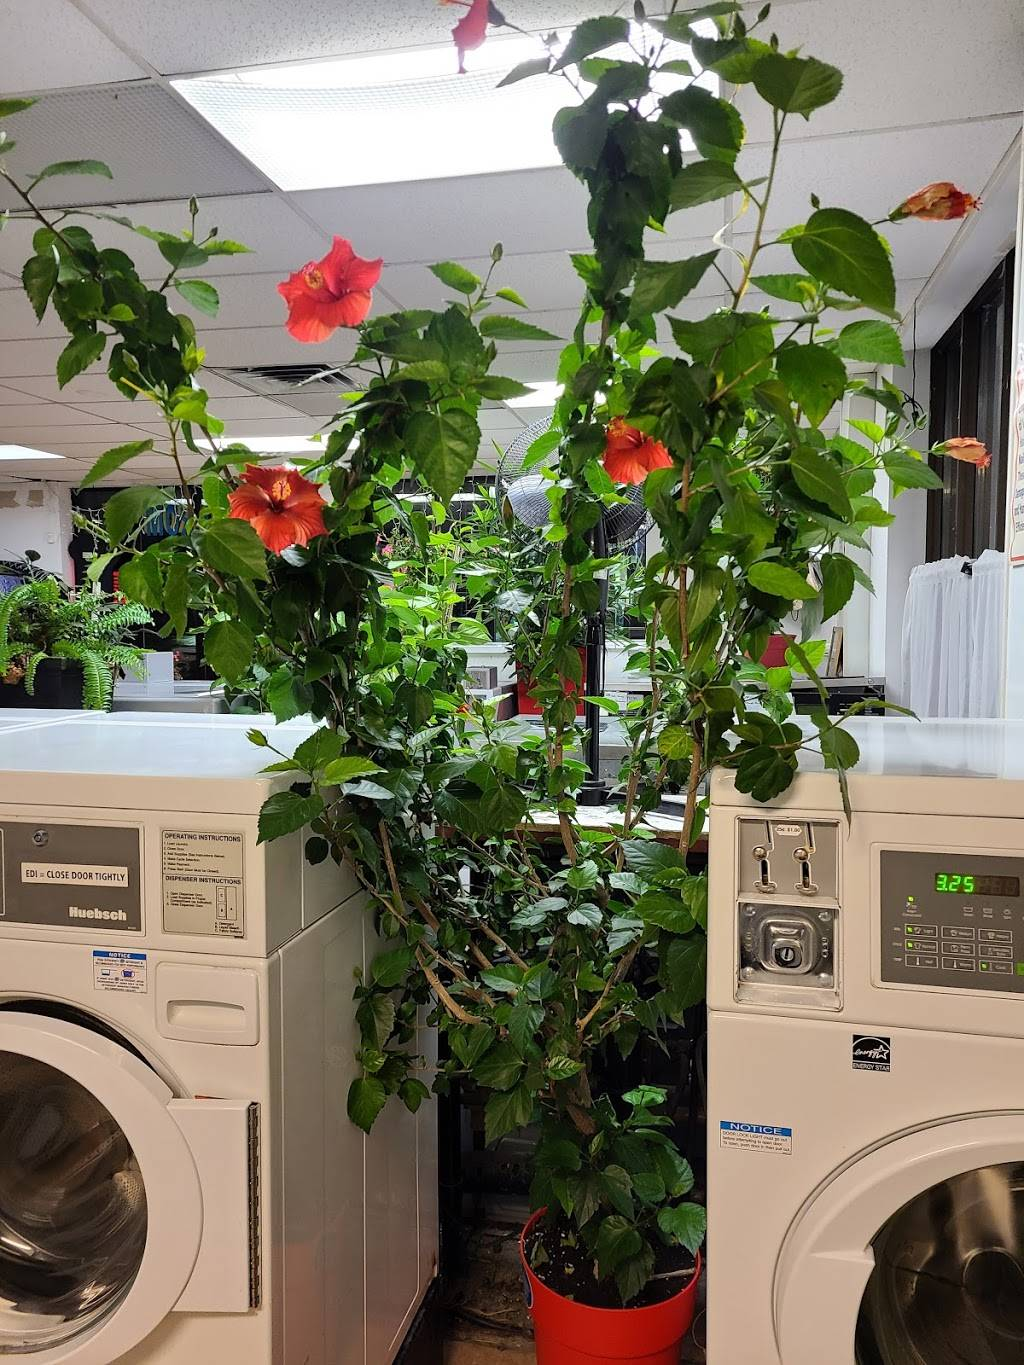 Campbell Laundry Shop - laundry  | Photo 6 of 6 | Address: 1705 College Ave, Windsor, ON N9B 1M4, Canada | Phone: (519) 258-3113